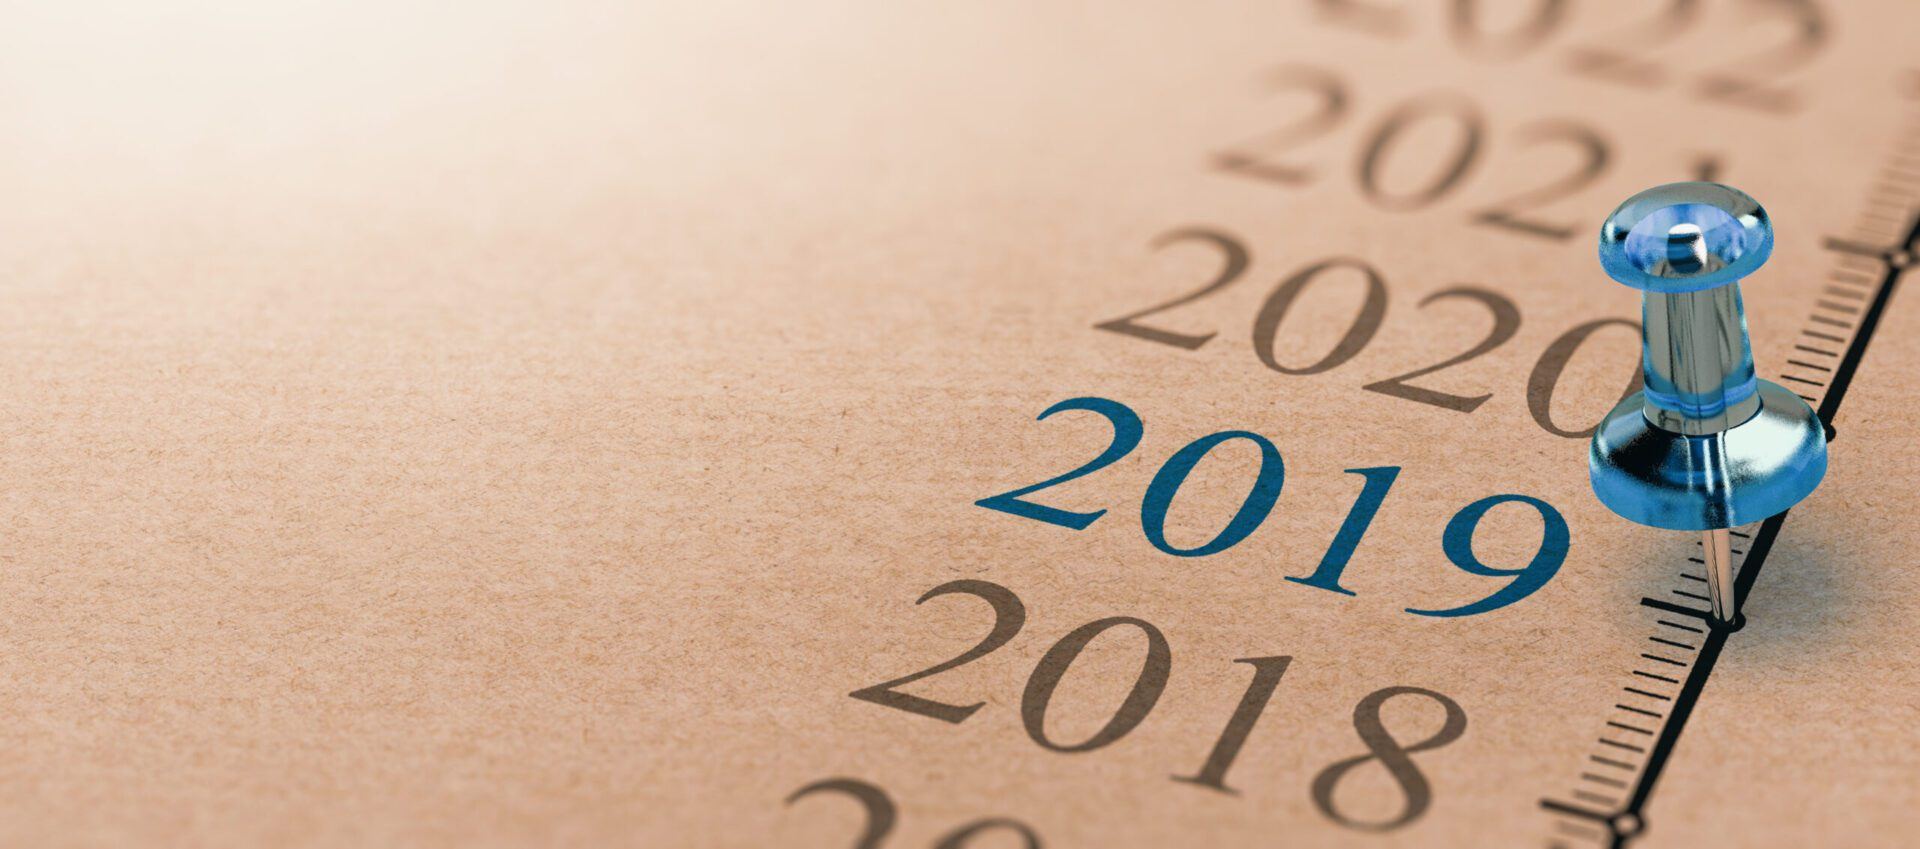 Two Important Dates Not to Miss in 2019